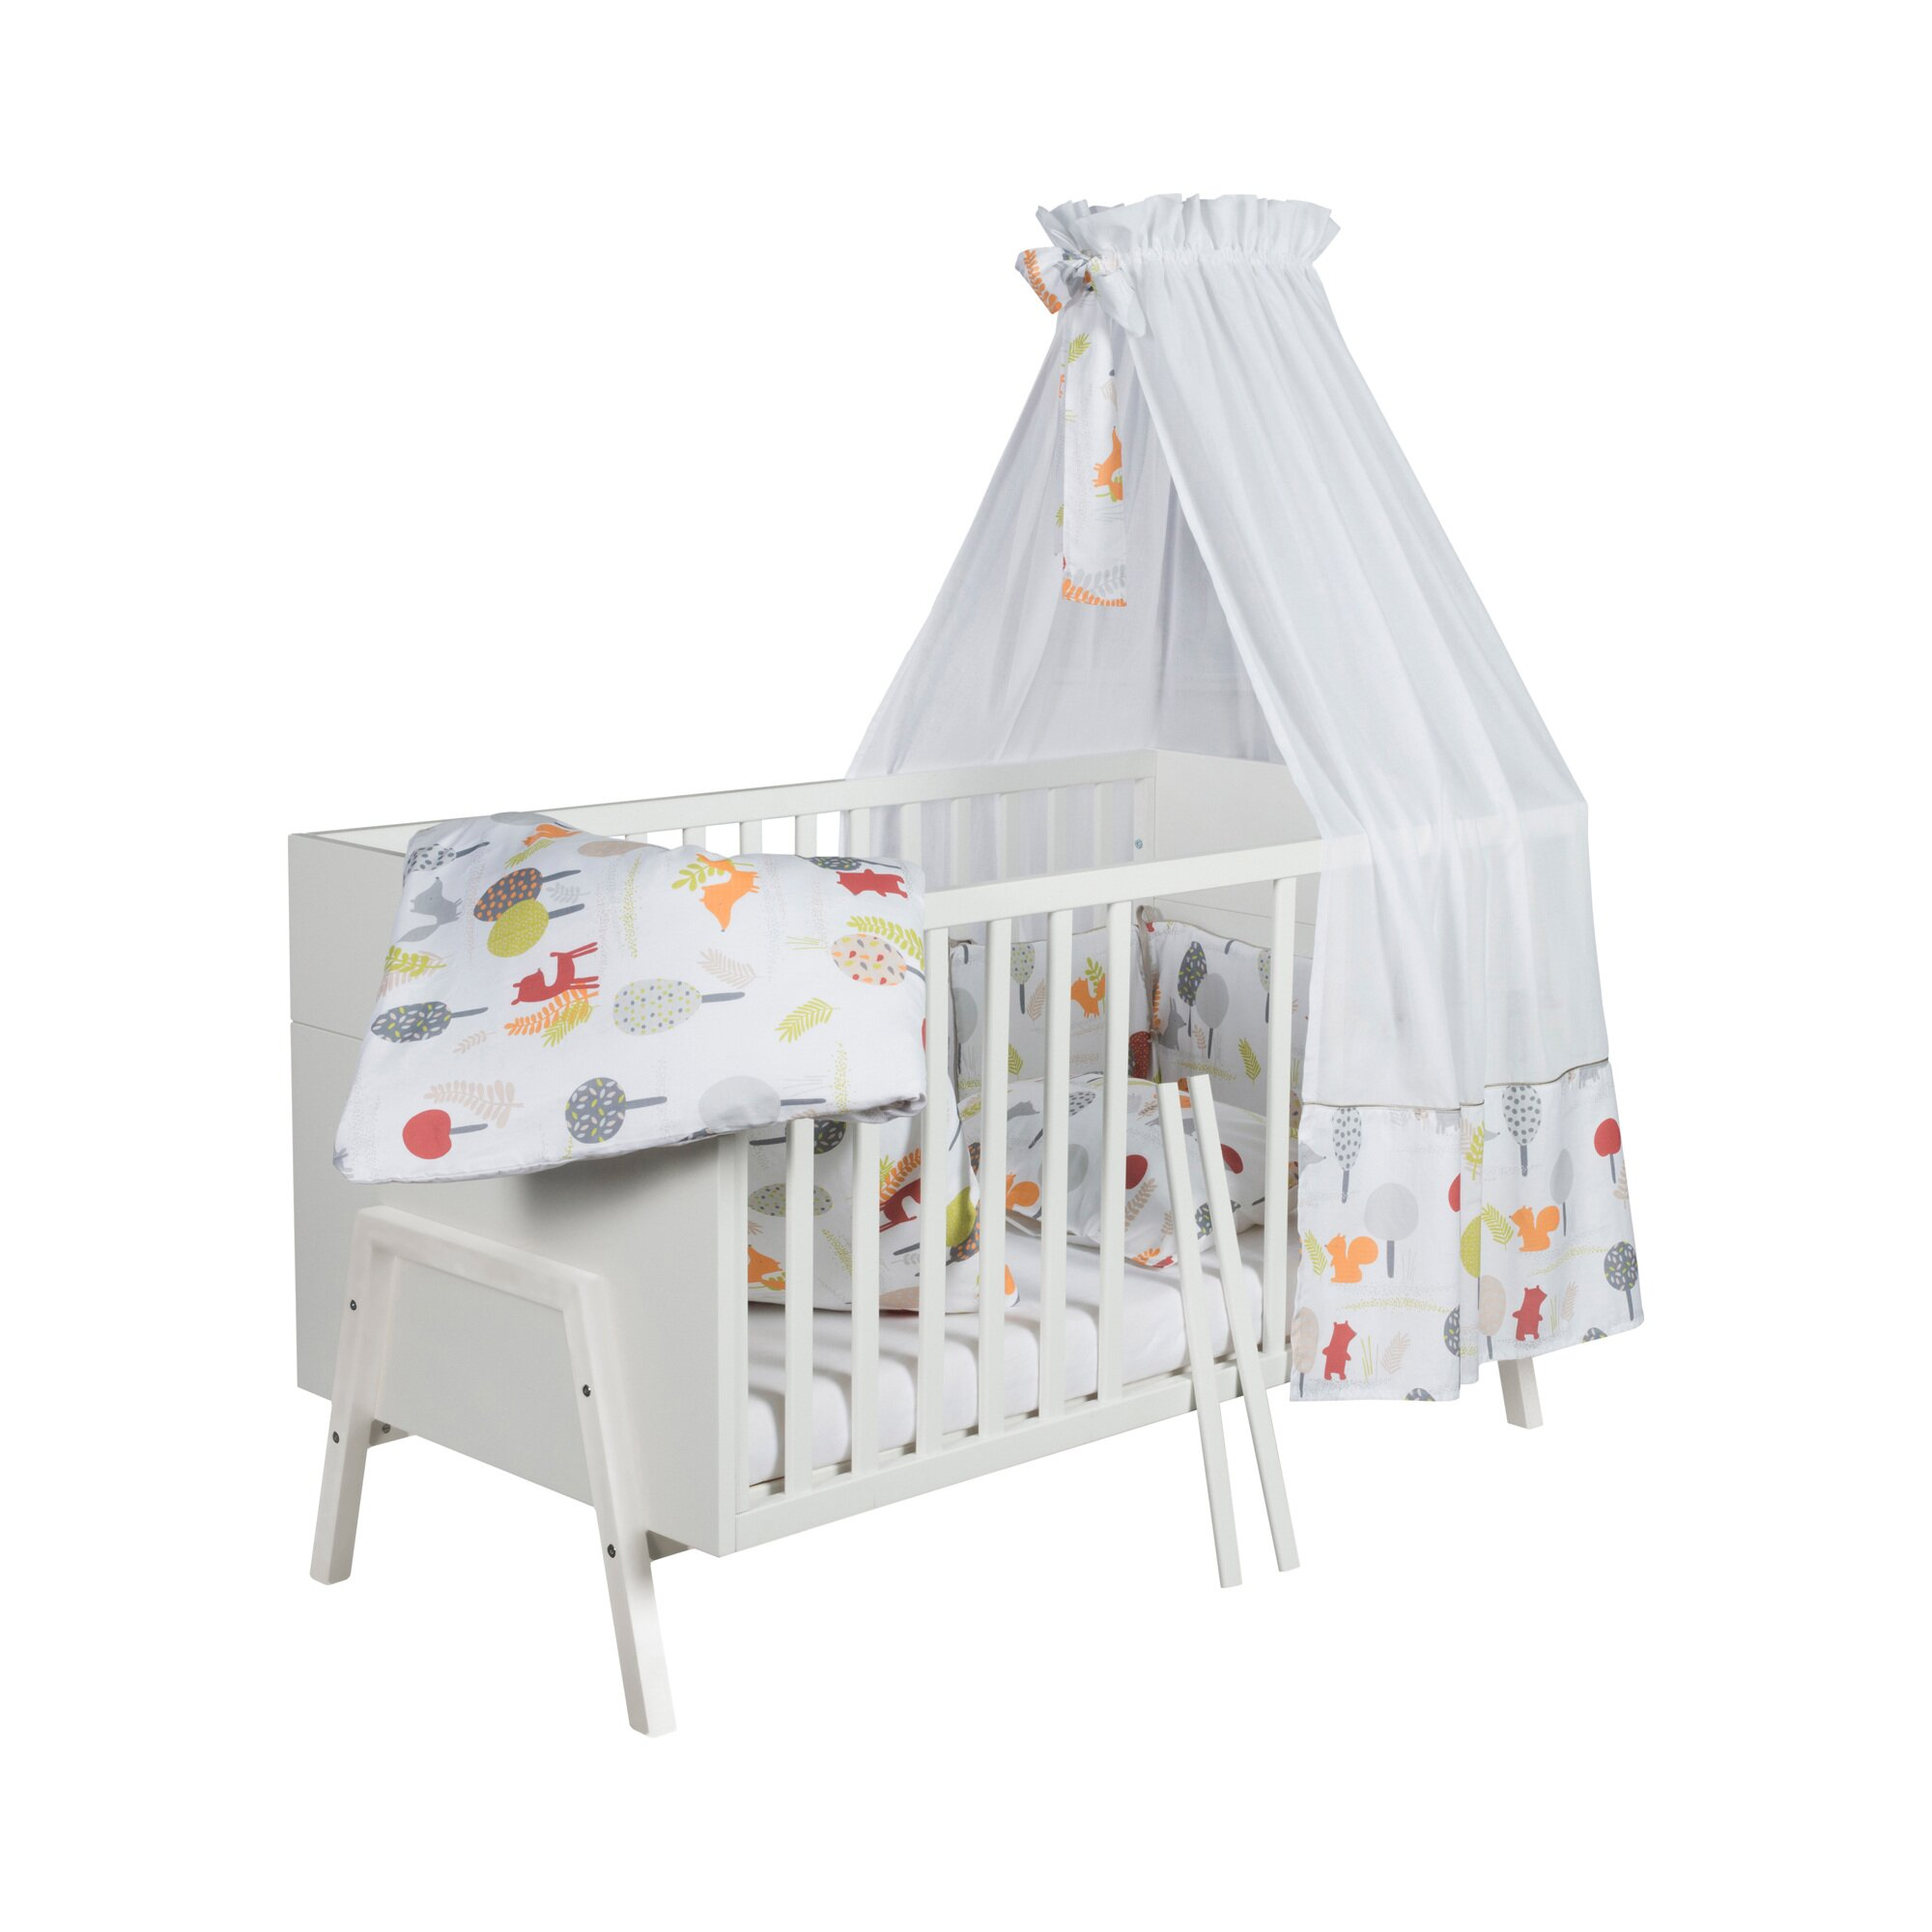 schardt-2-tlg-babyzimmer-holly-white